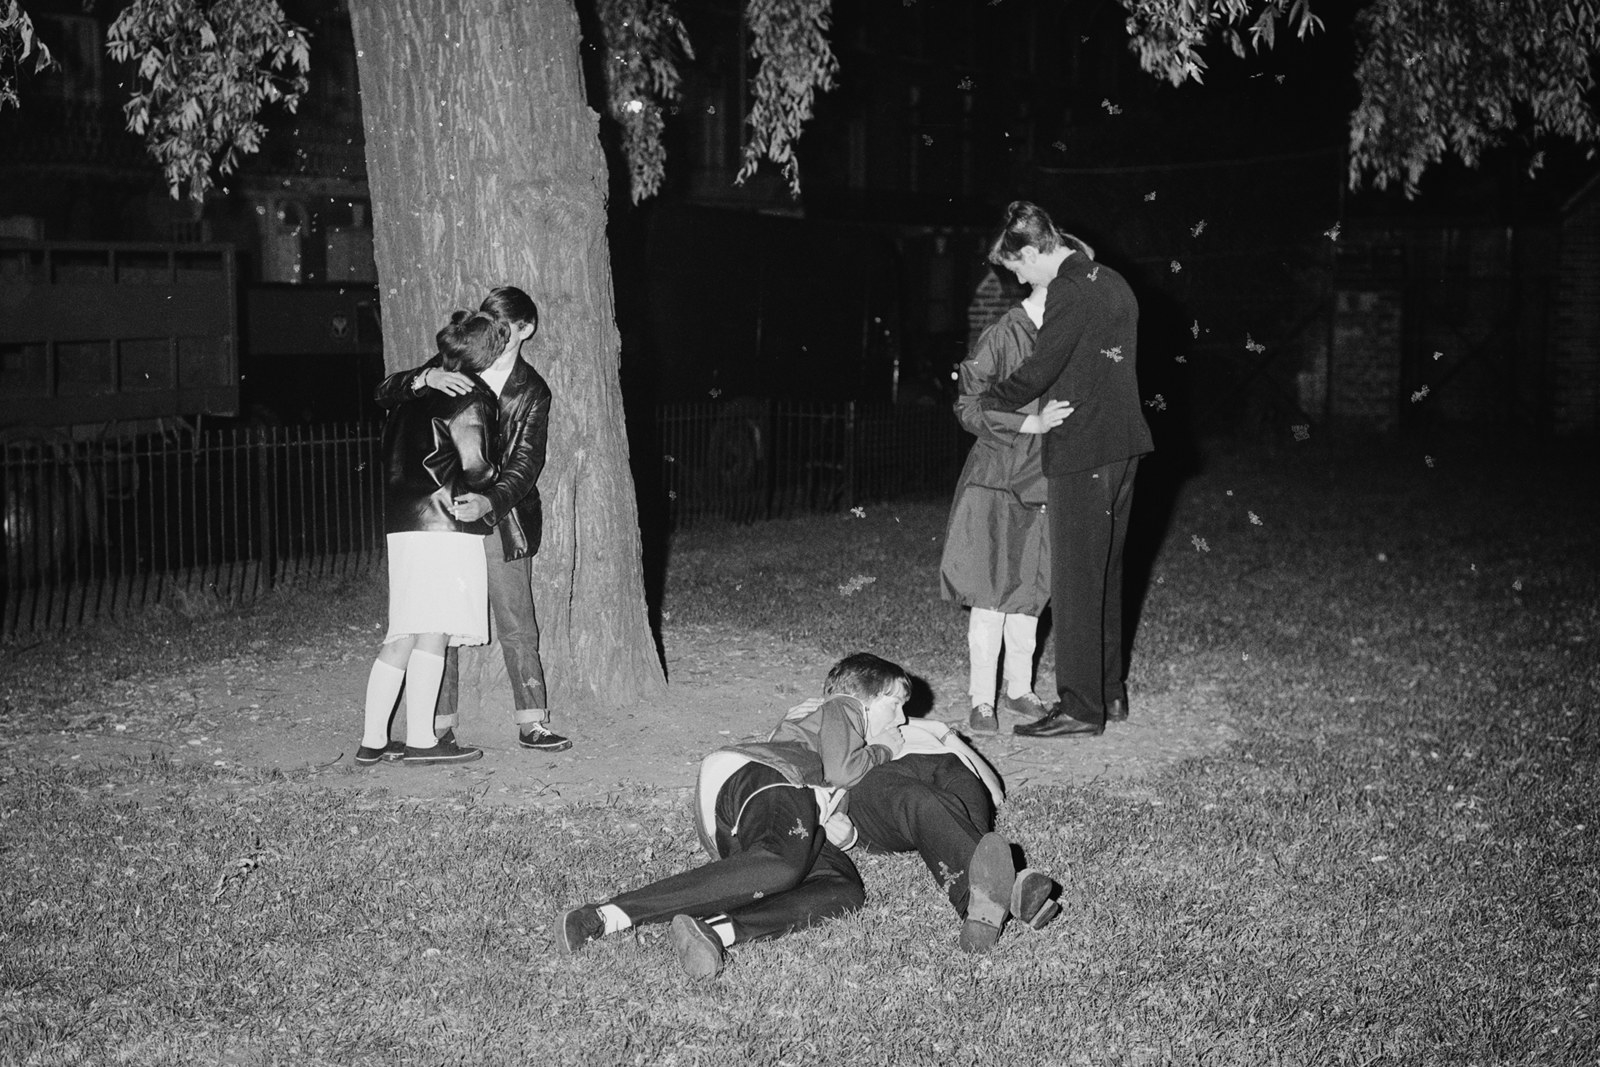 Young Mods make out in a London park in 1964.